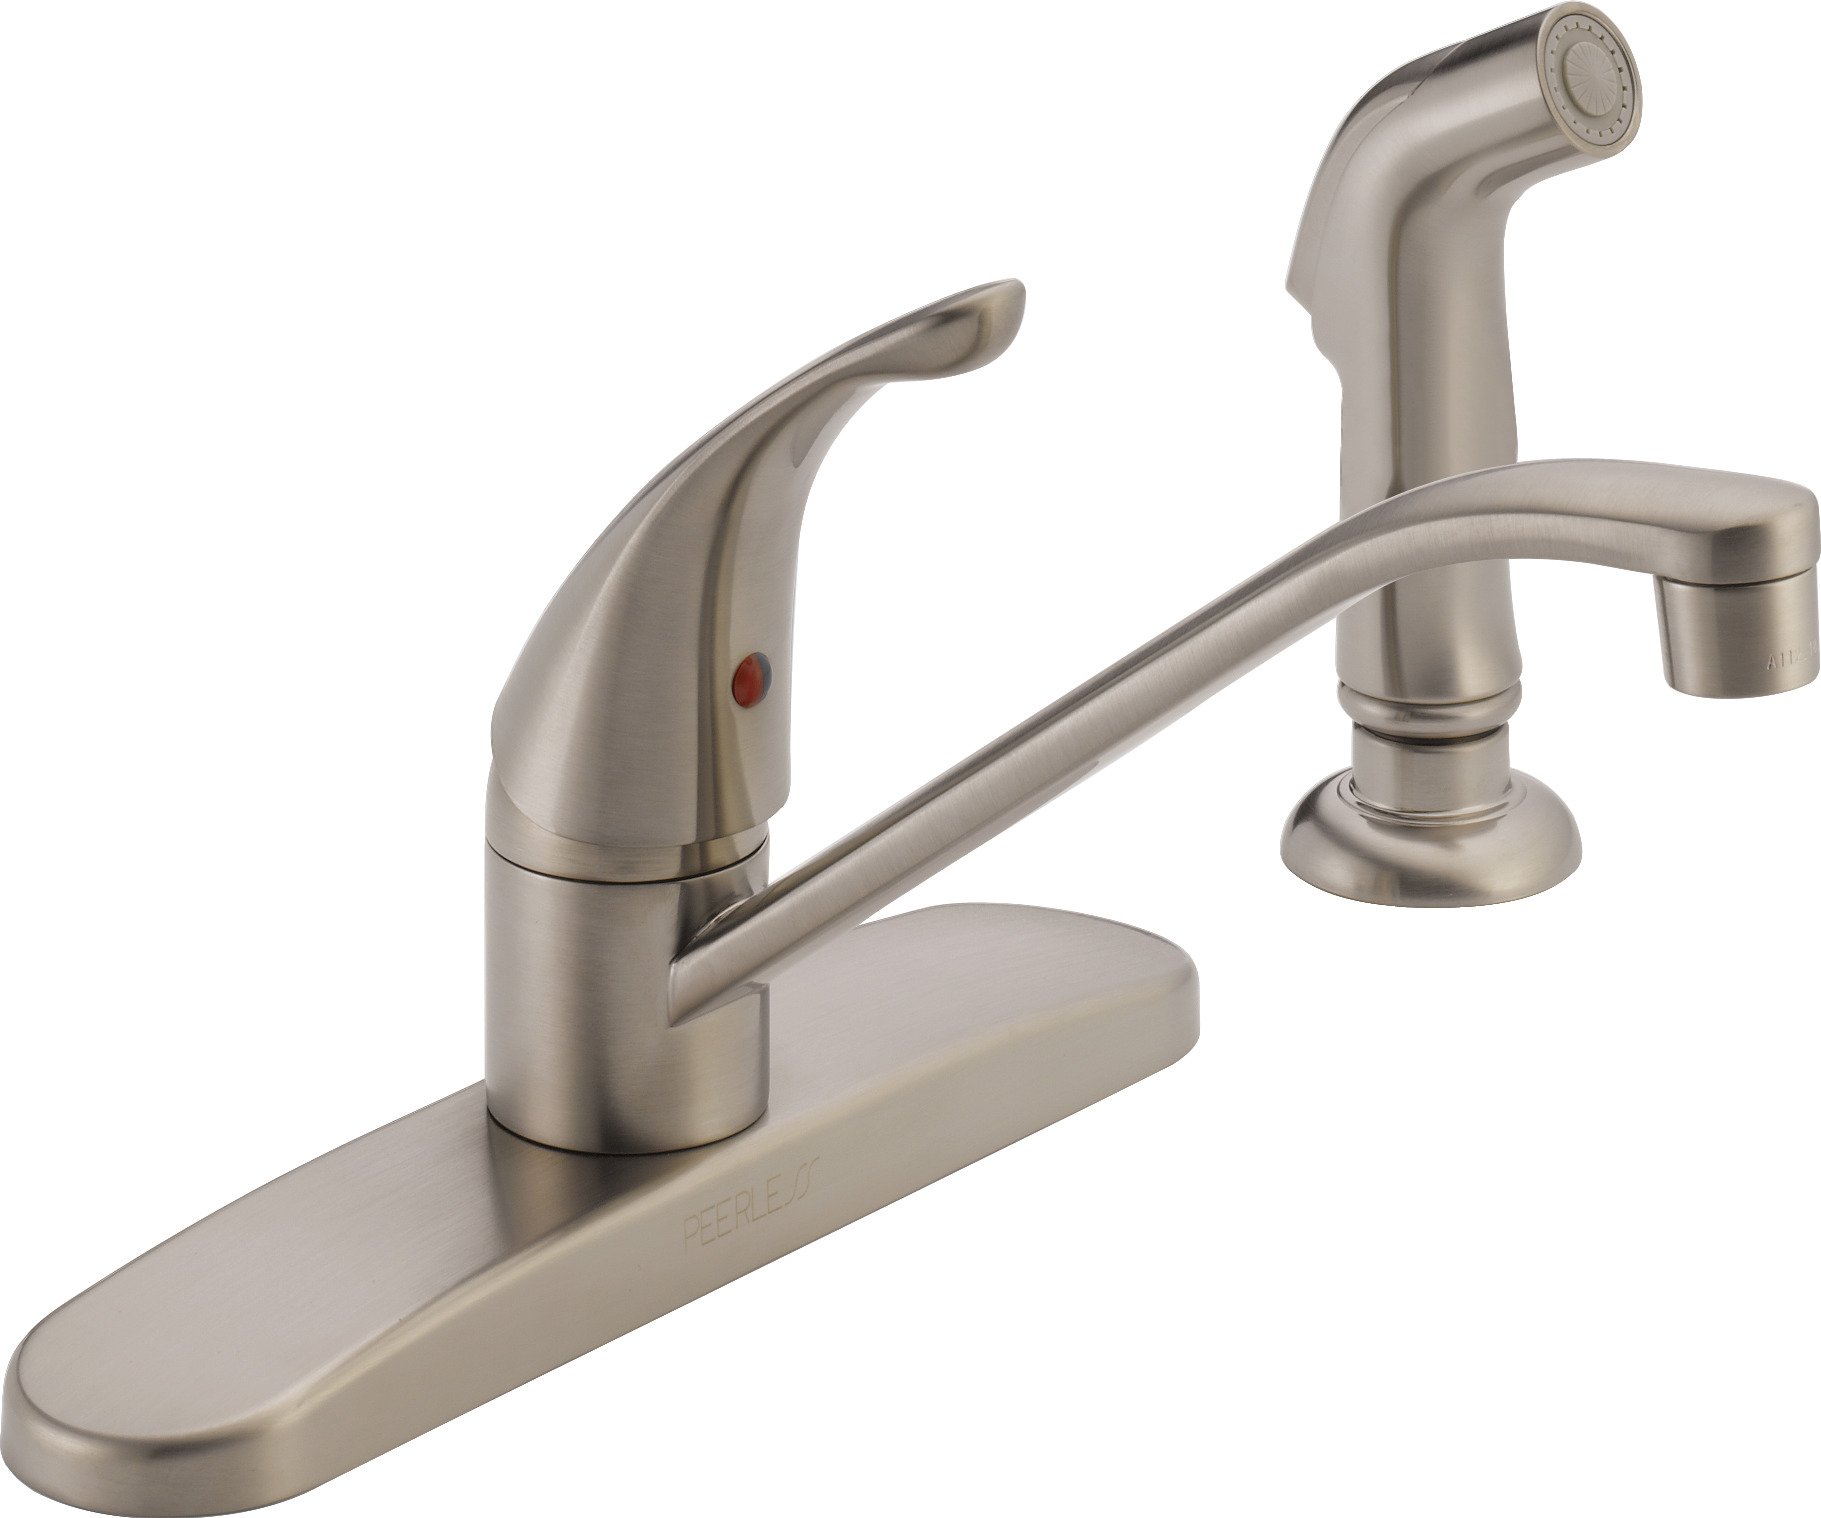 Peerless Single Handle Side Spray Kitchen Faucet, Stainless